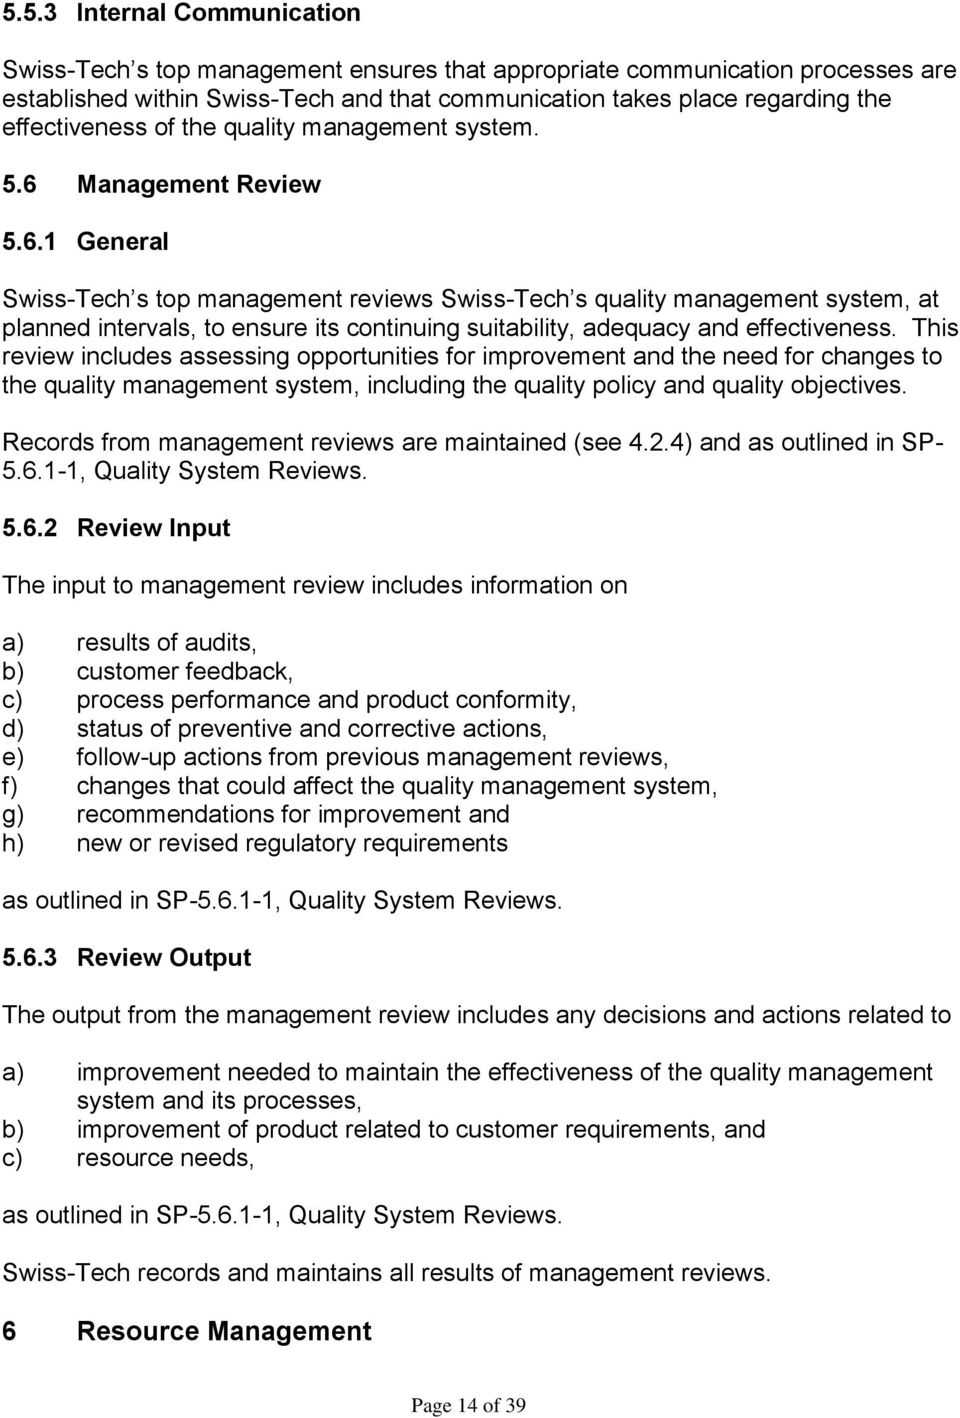 Management Review 5.6.1 General Swiss-Tech s top management reviews Swiss-Tech s quality management system, at planned intervals, to ensure its continuing suitability, adequacy and effectiveness.